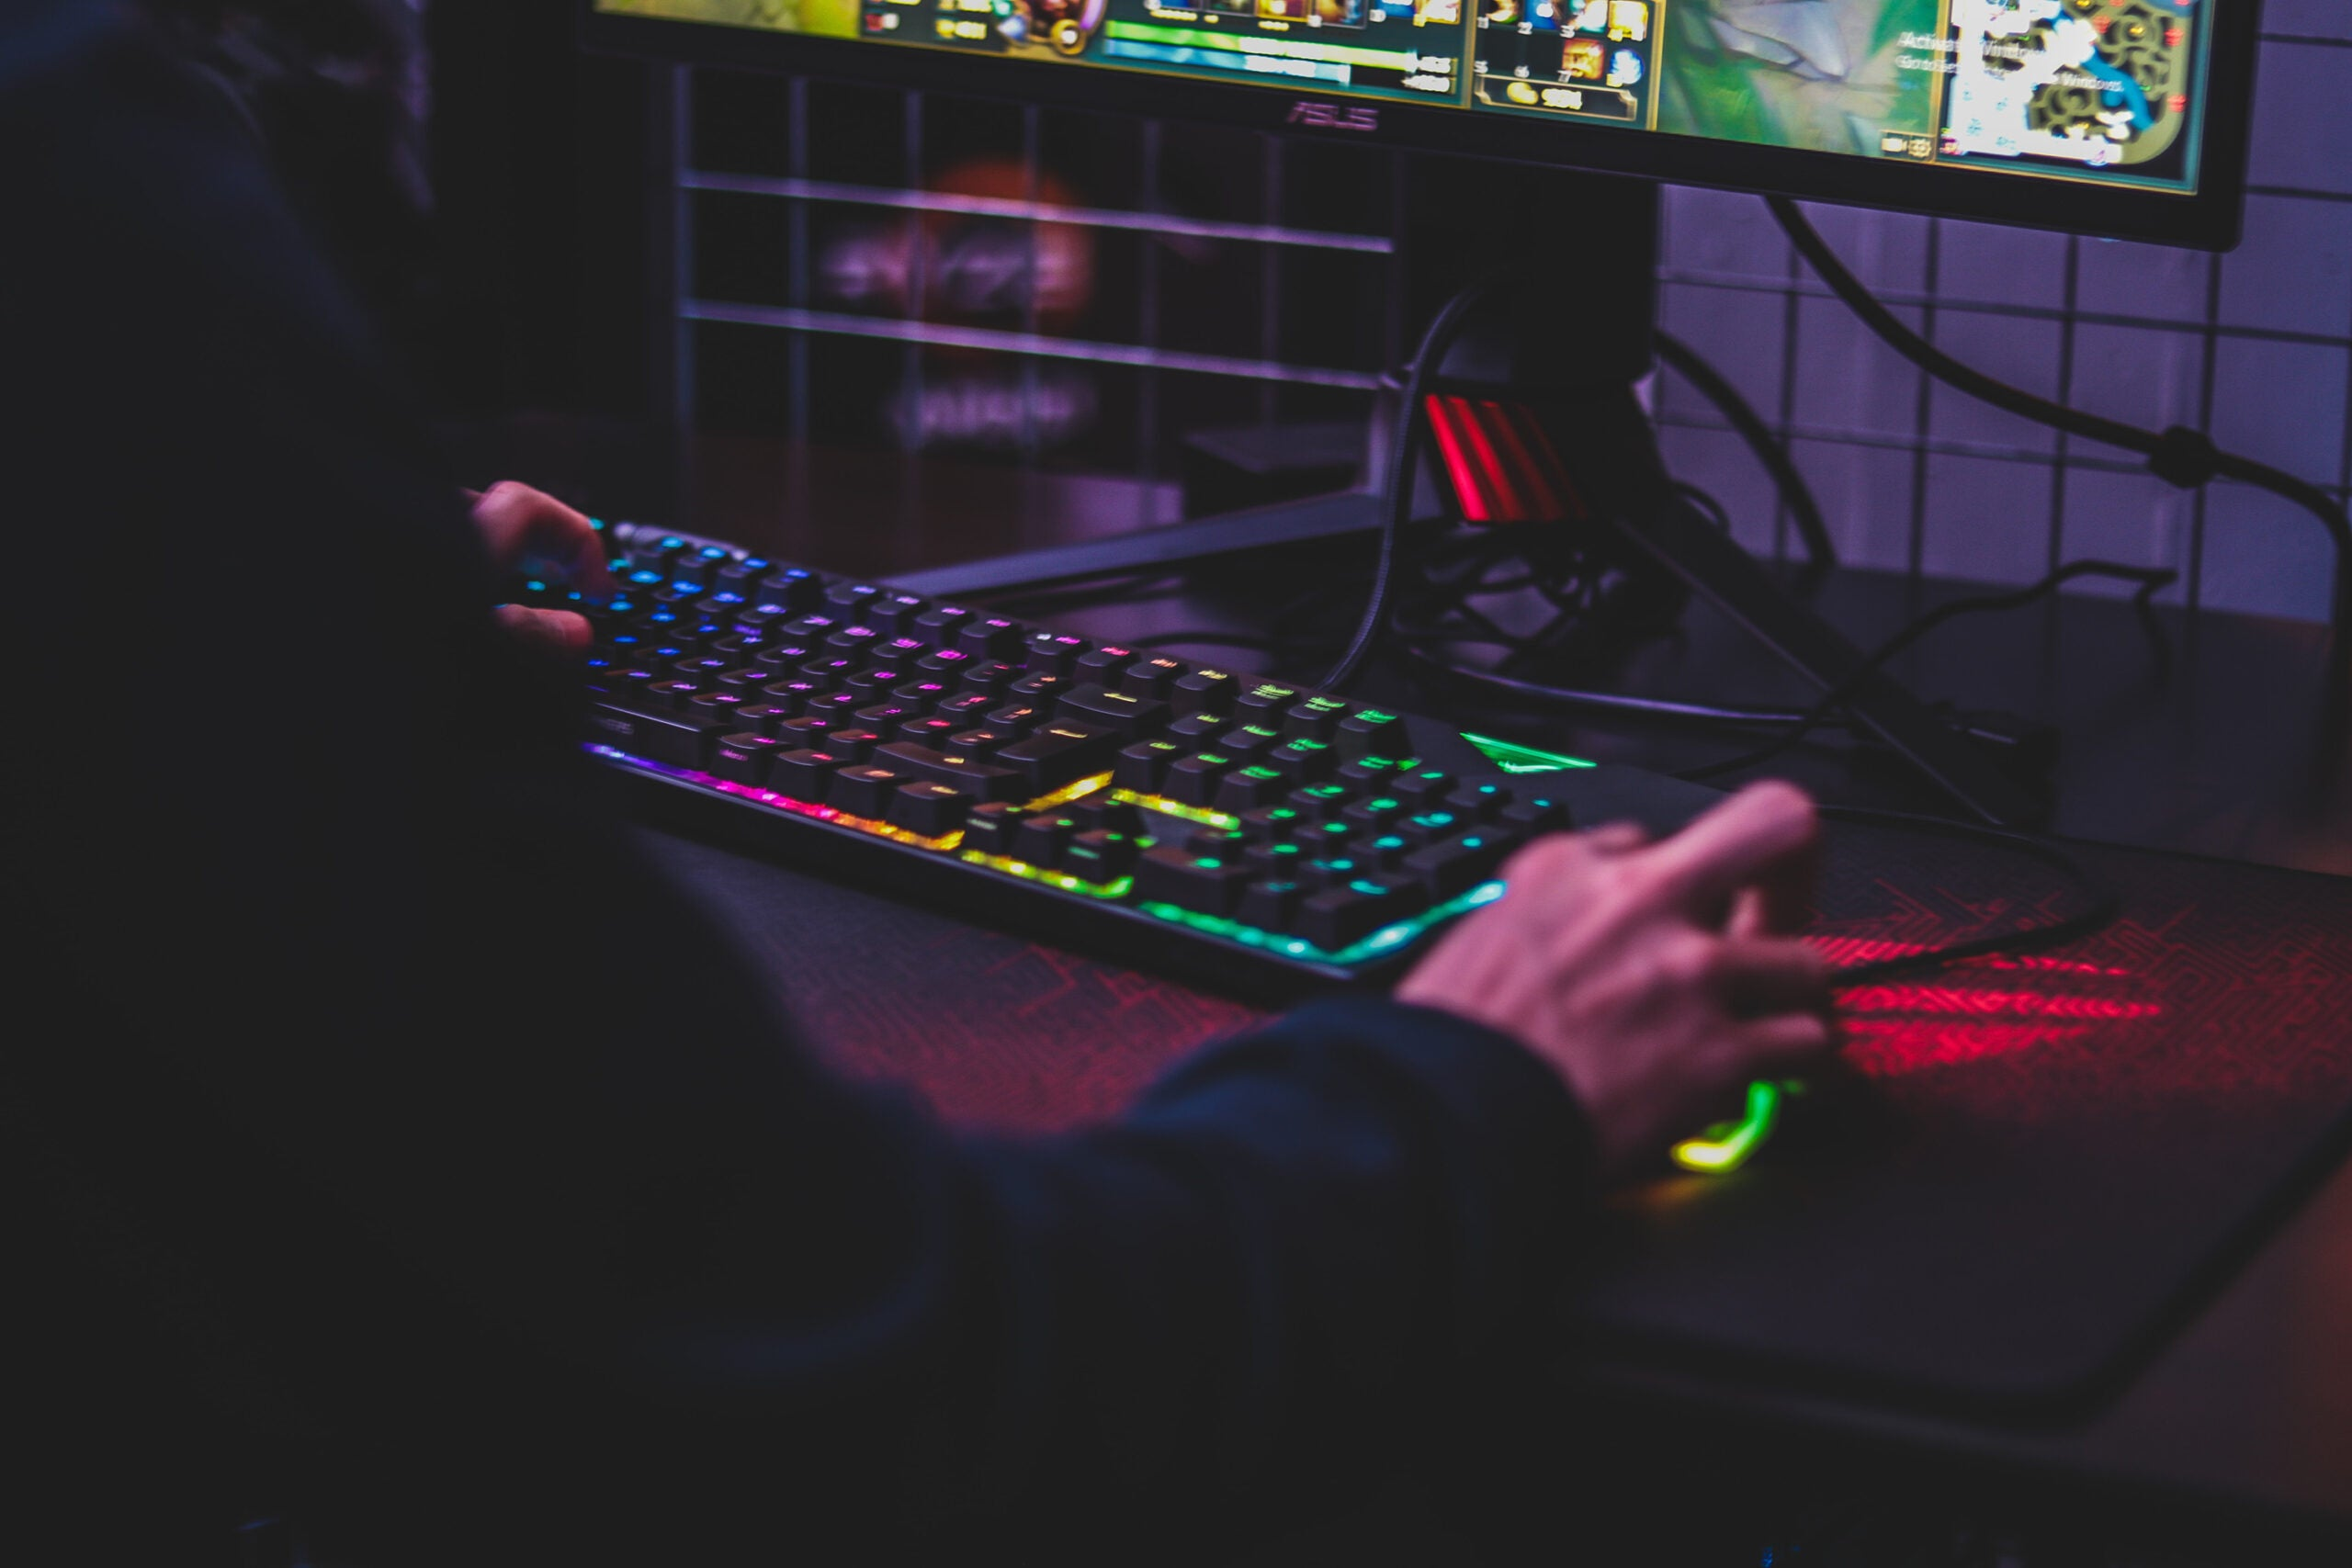 Person using a gaming mouse and ergonomic keyboard.